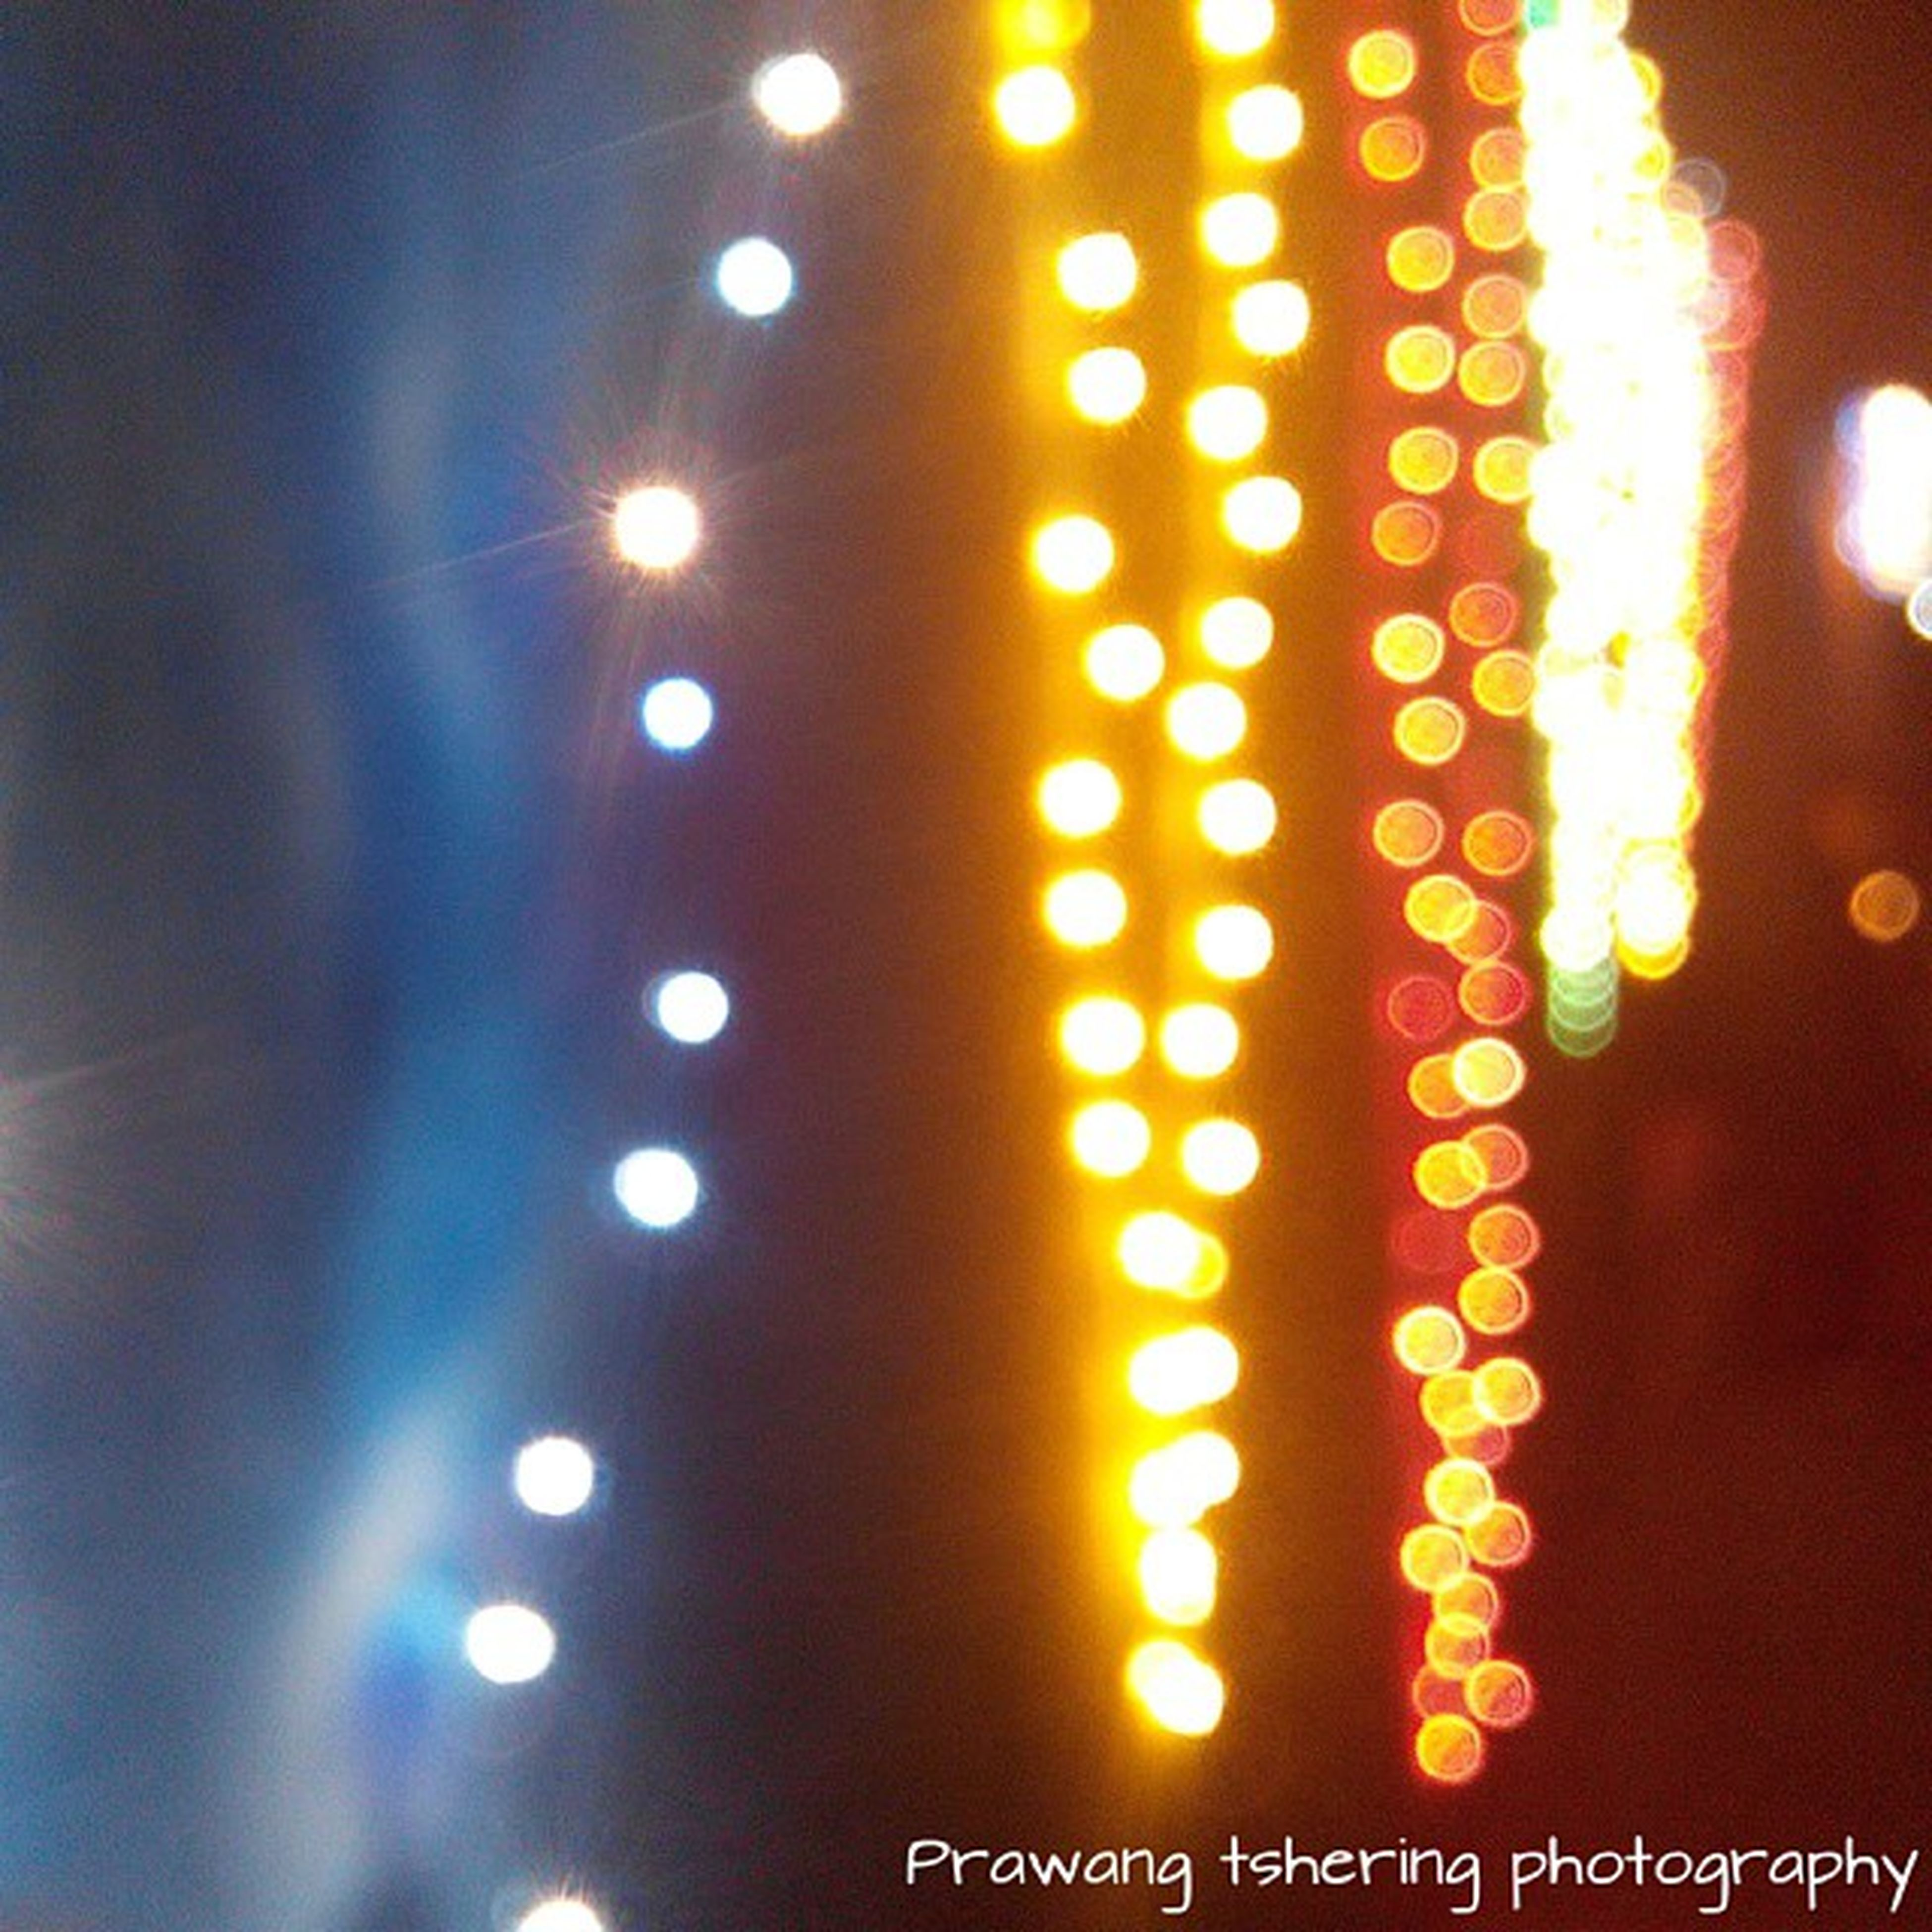 illuminated, indoors, night, lighting equipment, glowing, text, light - natural phenomenon, close-up, communication, pattern, western script, decoration, no people, lit, defocused, hanging, electricity, circle, number, electric light